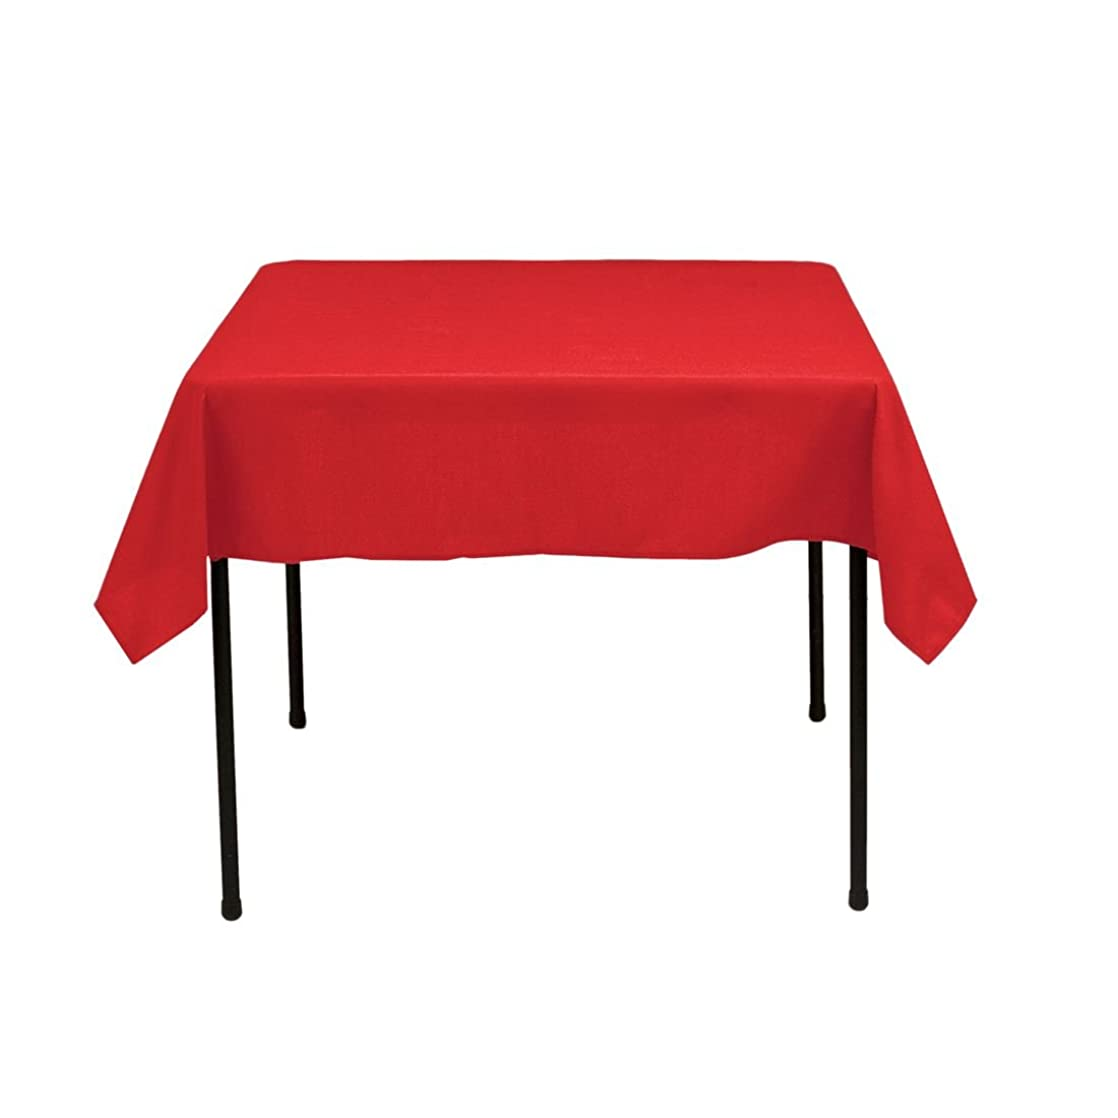 Gee Di Moda Square Tablecloth - 52 x 52 Inch - Red Square Table Cloth for Square or Round Tables in Washable Polyester - Great for Buffet Table, Parties, Holiday Dinner, Wedding & More fovslpcj21470